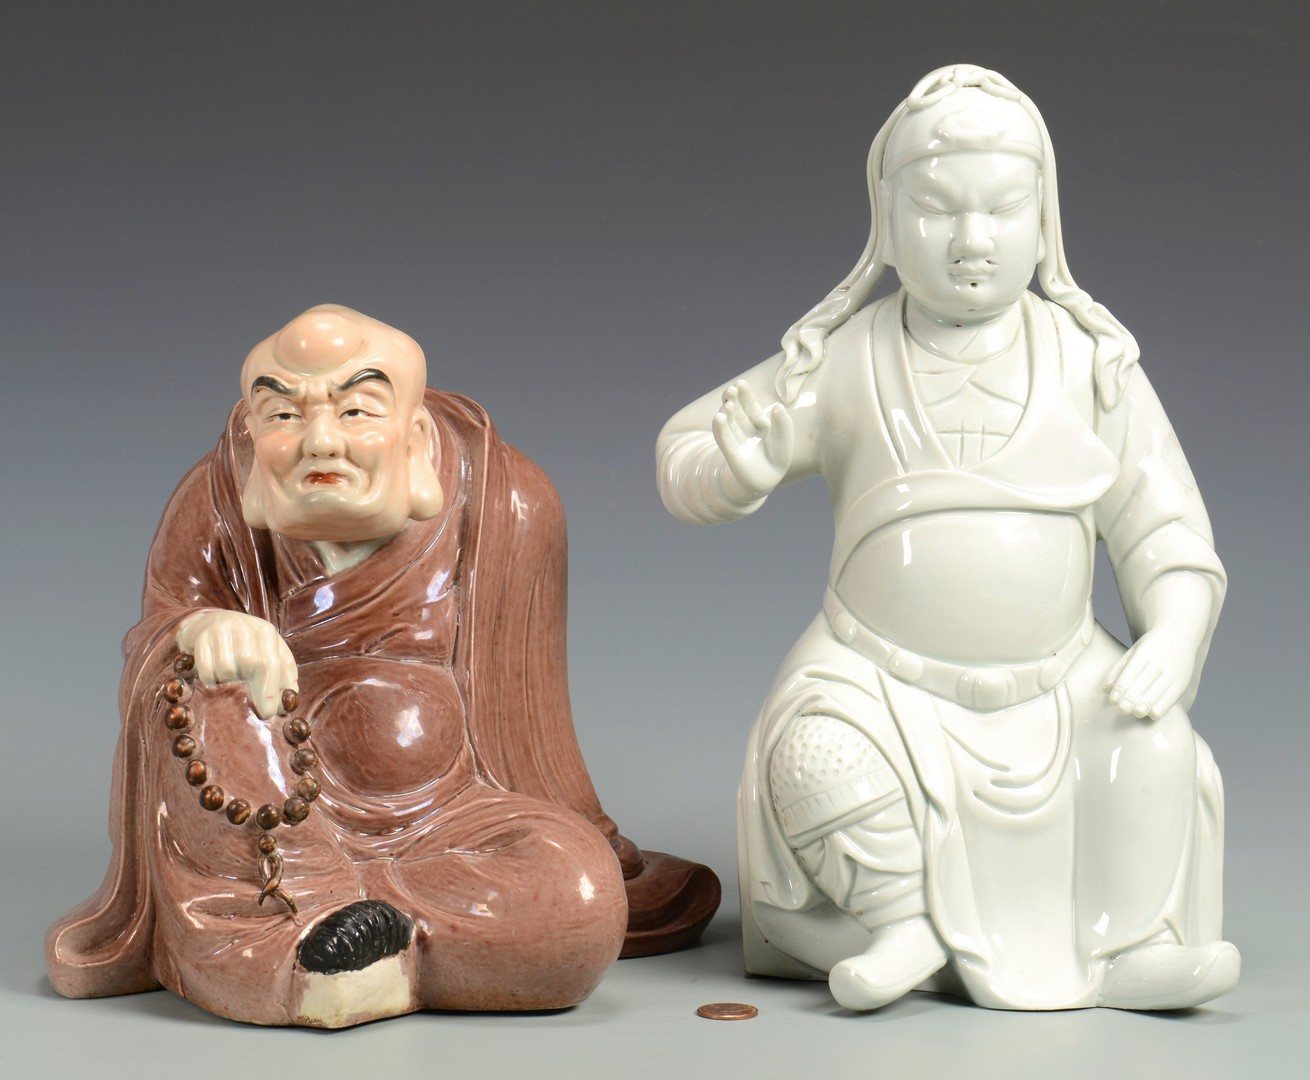 Lot 3594239: 2 Chinese Porcelain Figures